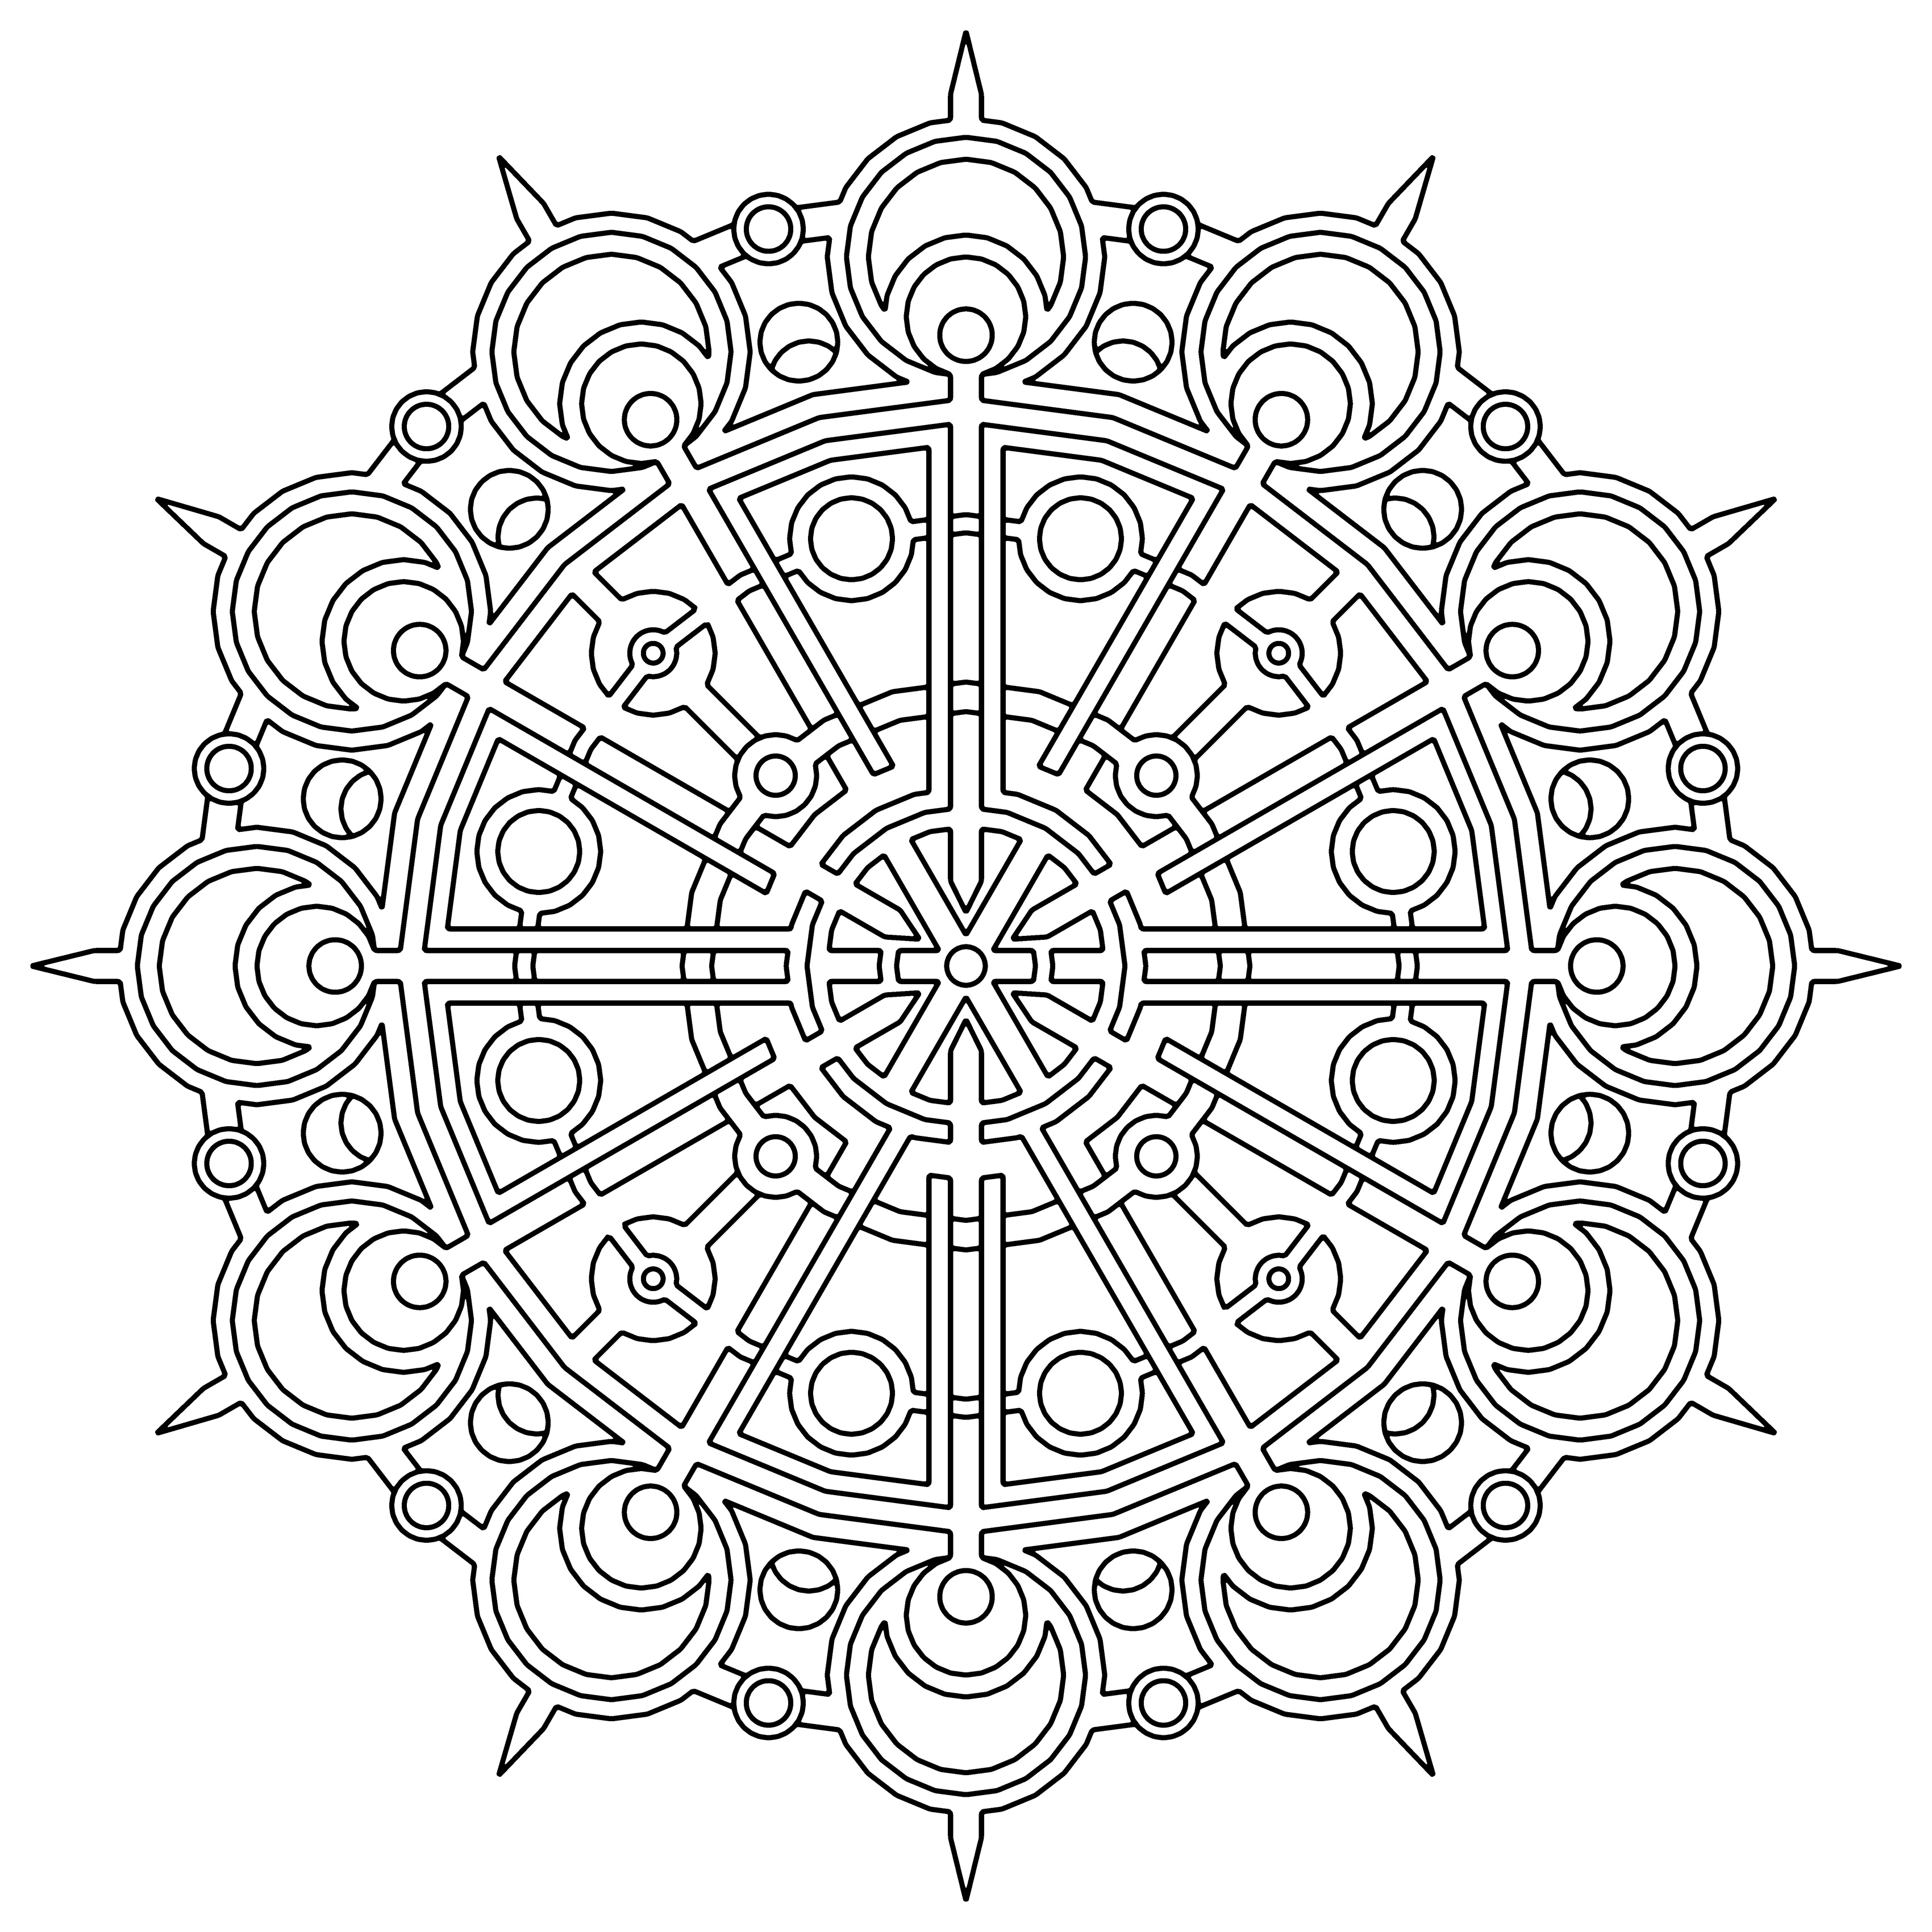 coloring patterns pages cool design coloring pages getcoloringpagescom pages patterns coloring